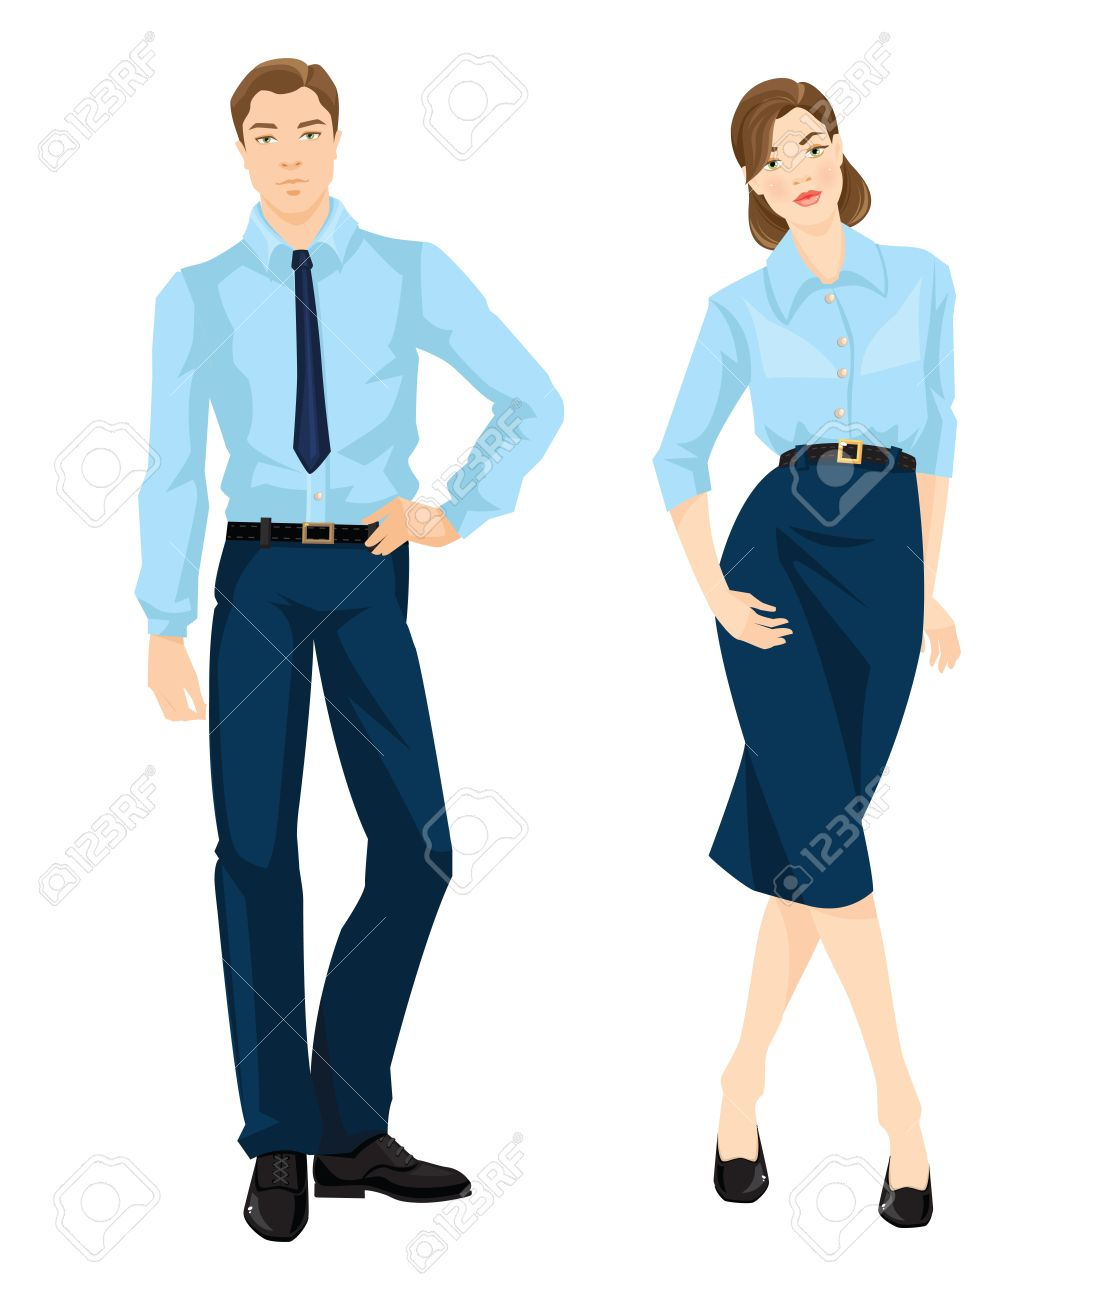 Vector Illustration Of Corporate Dress Code Man And Woman In